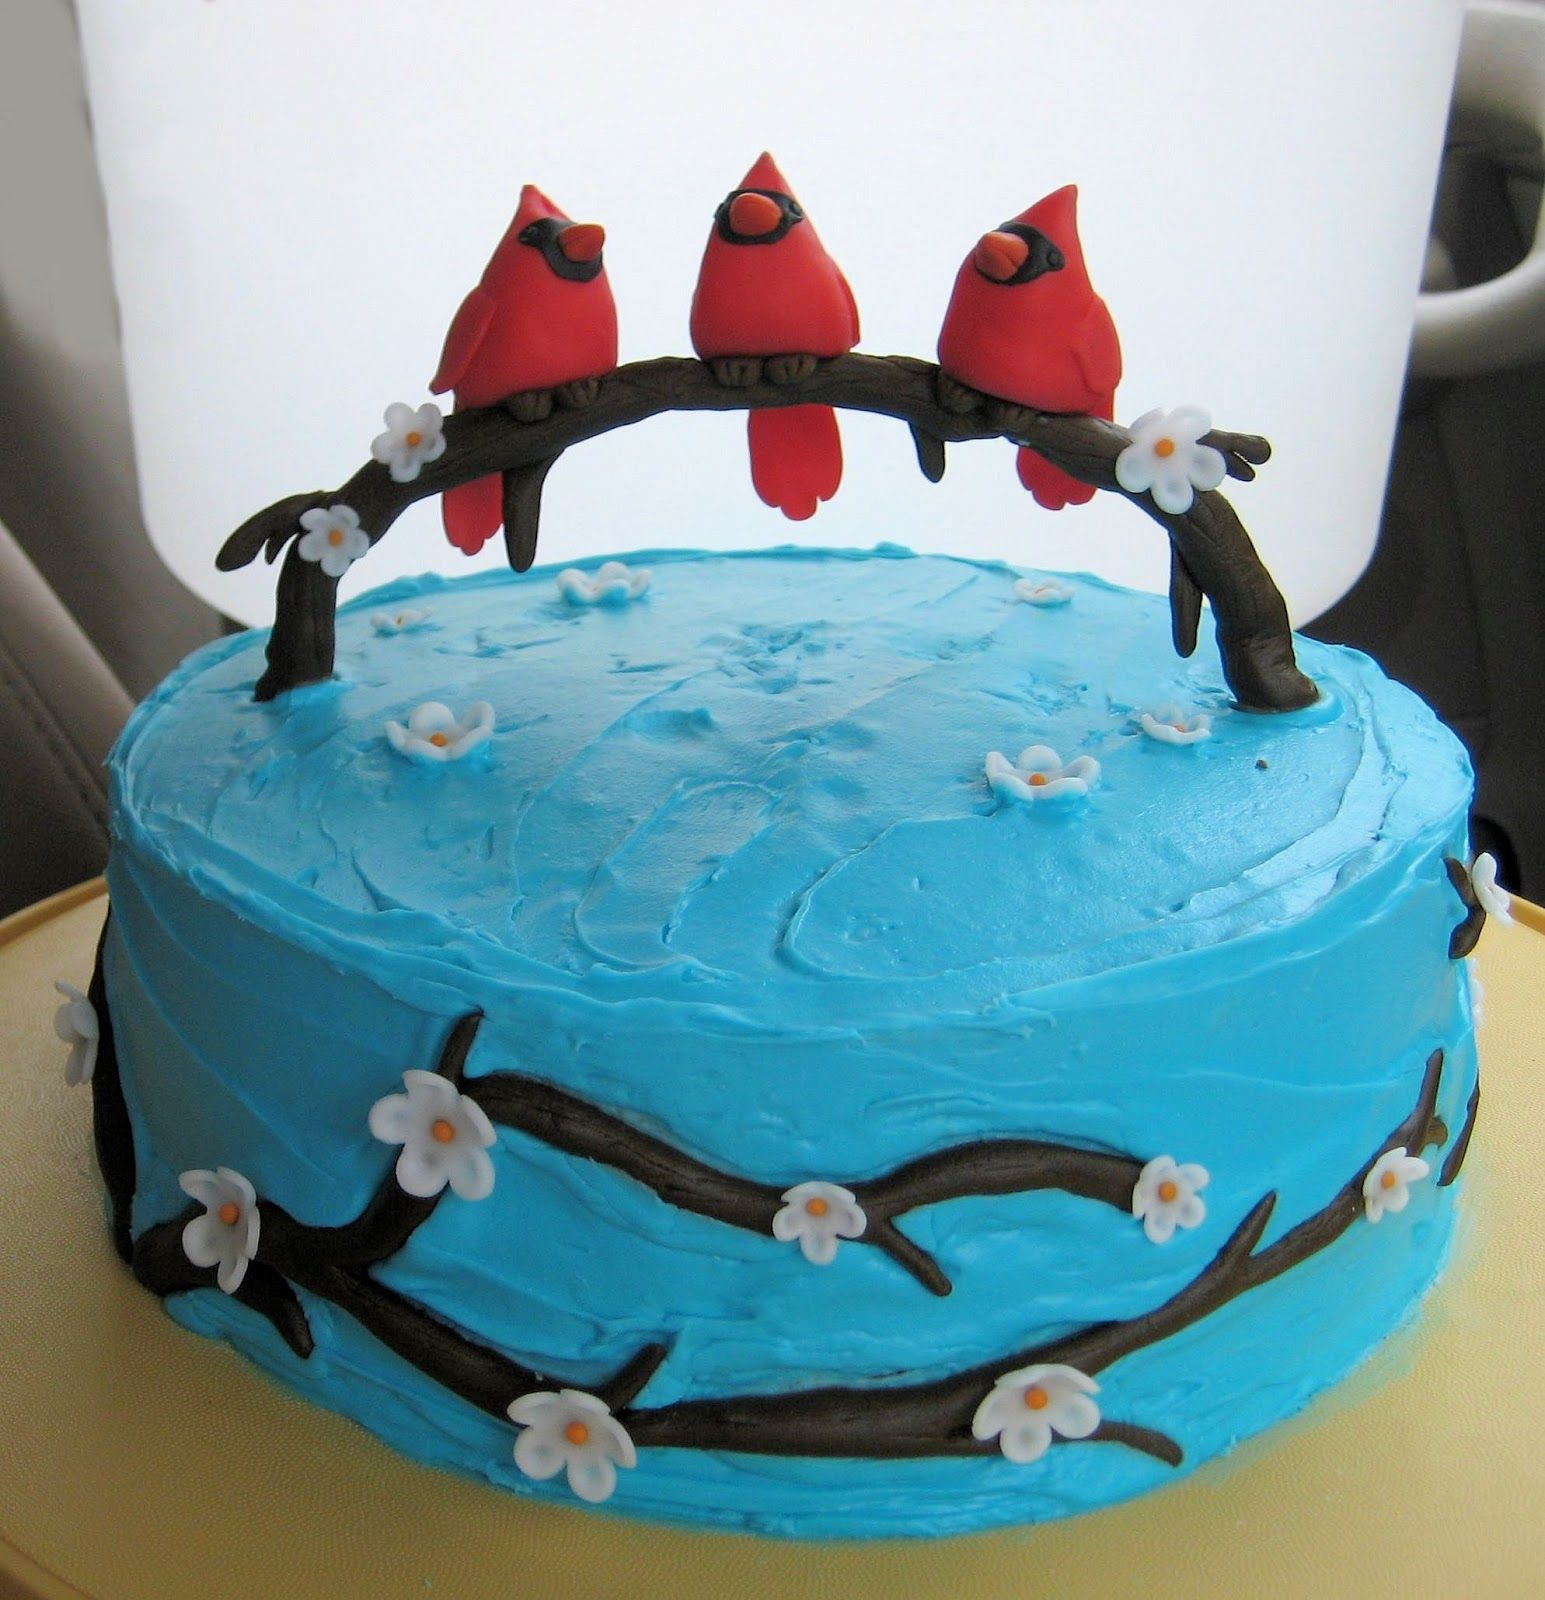 Incredible Cardinal Cake I Like The Birds On The Tree Limb With Images Personalised Birthday Cards Cominlily Jamesorg